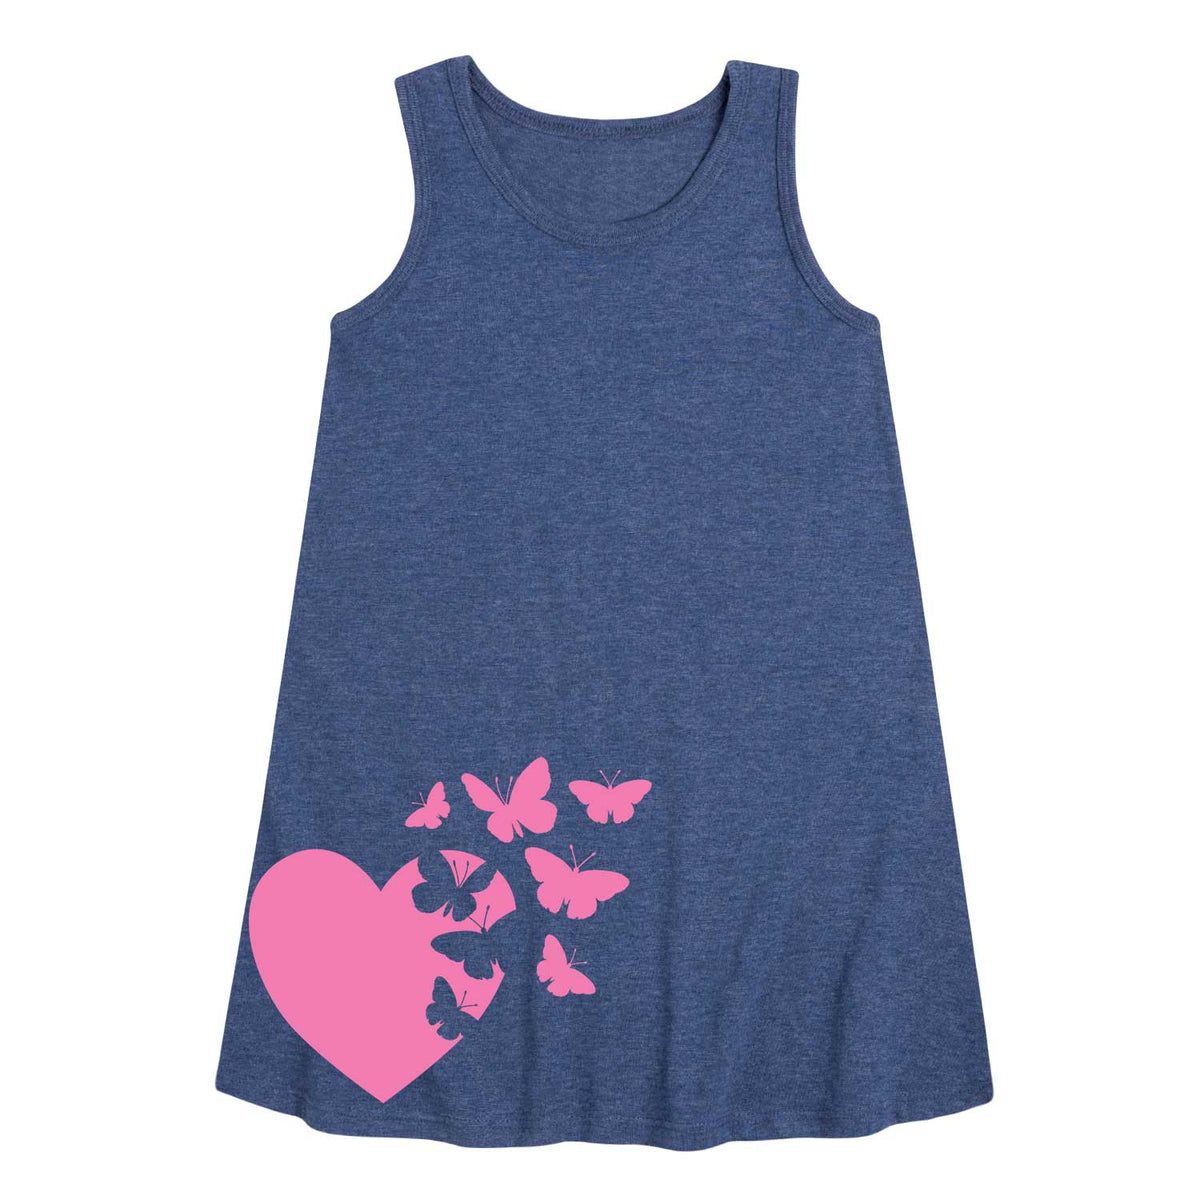 Heart Butterflies - Youth & Toddler A-Line Dress